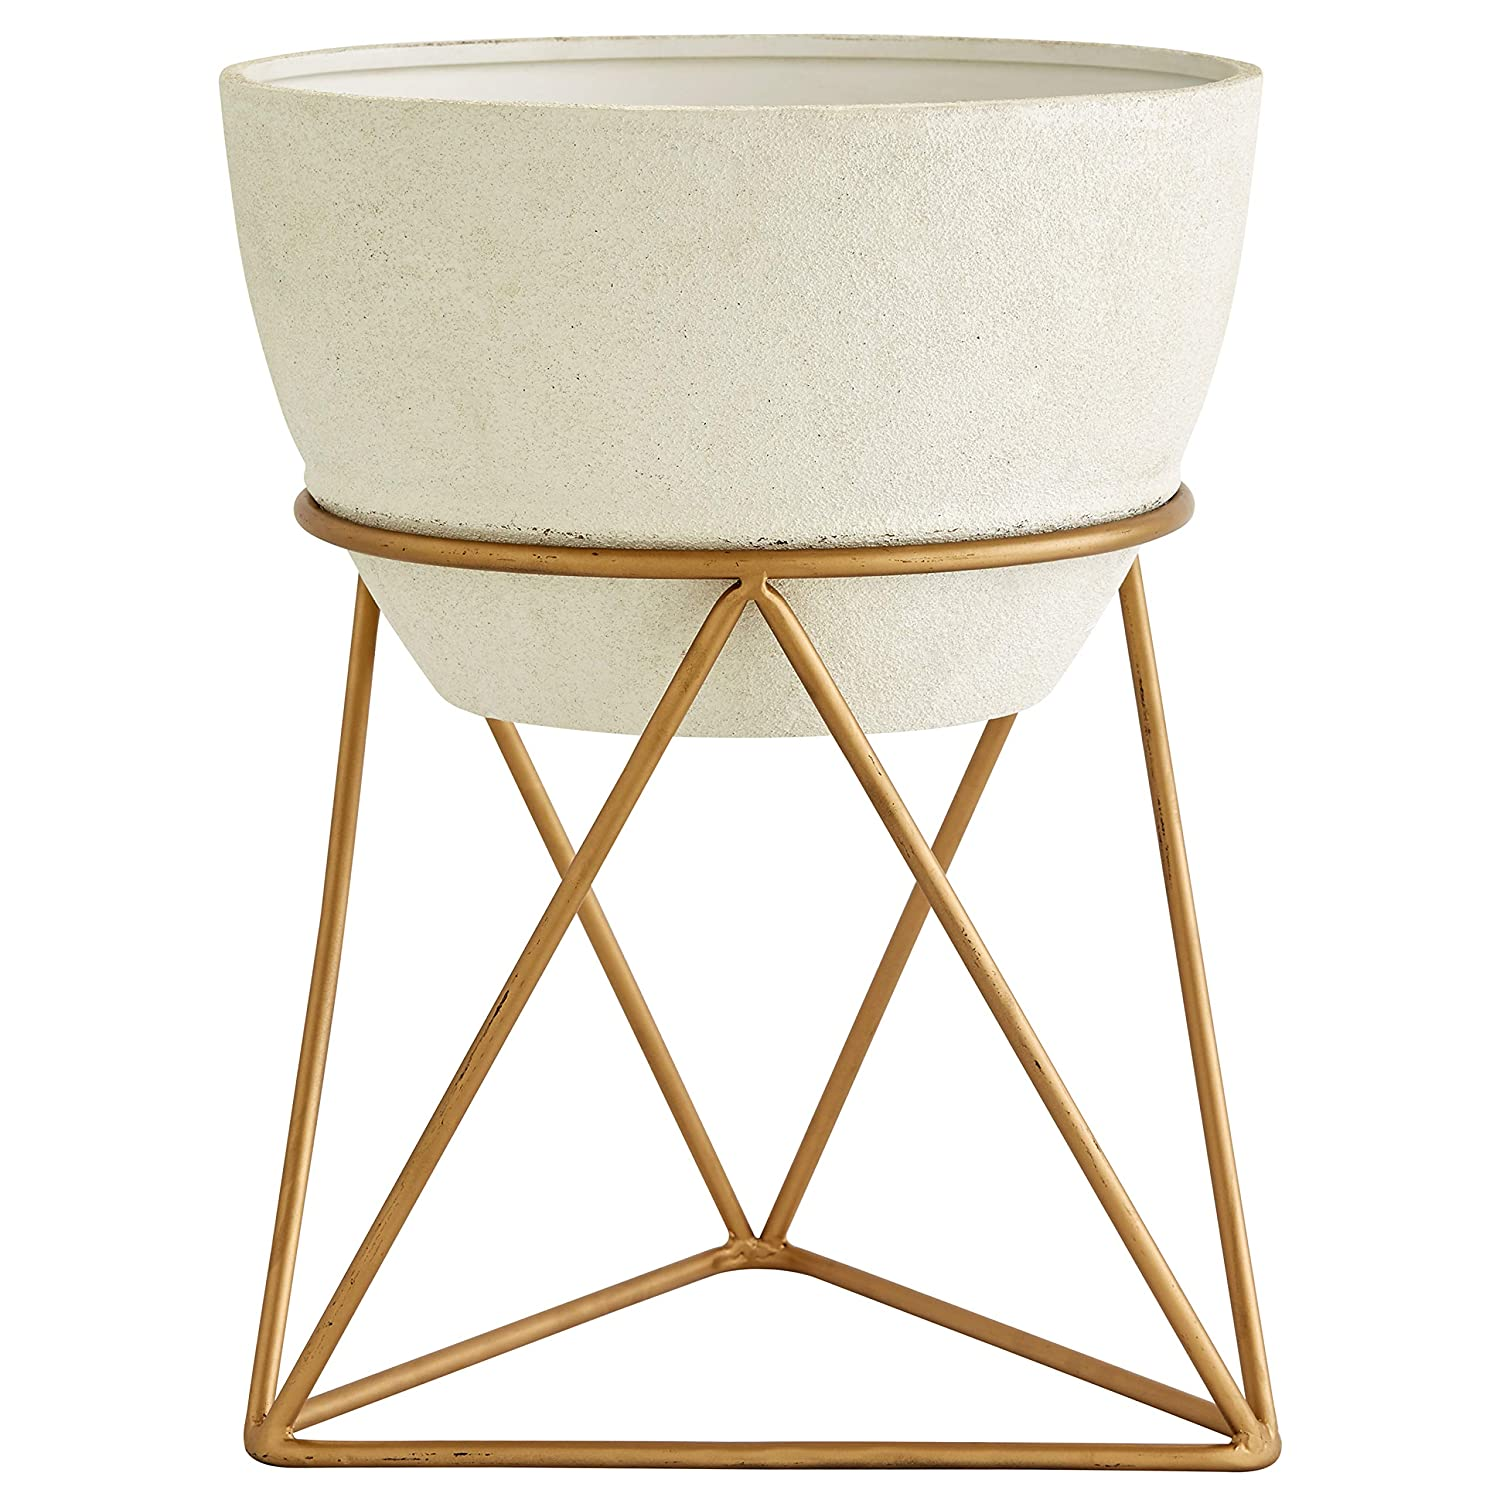 Rivet Casual Metal Planter and Stand, 15.94 H, White and Gold